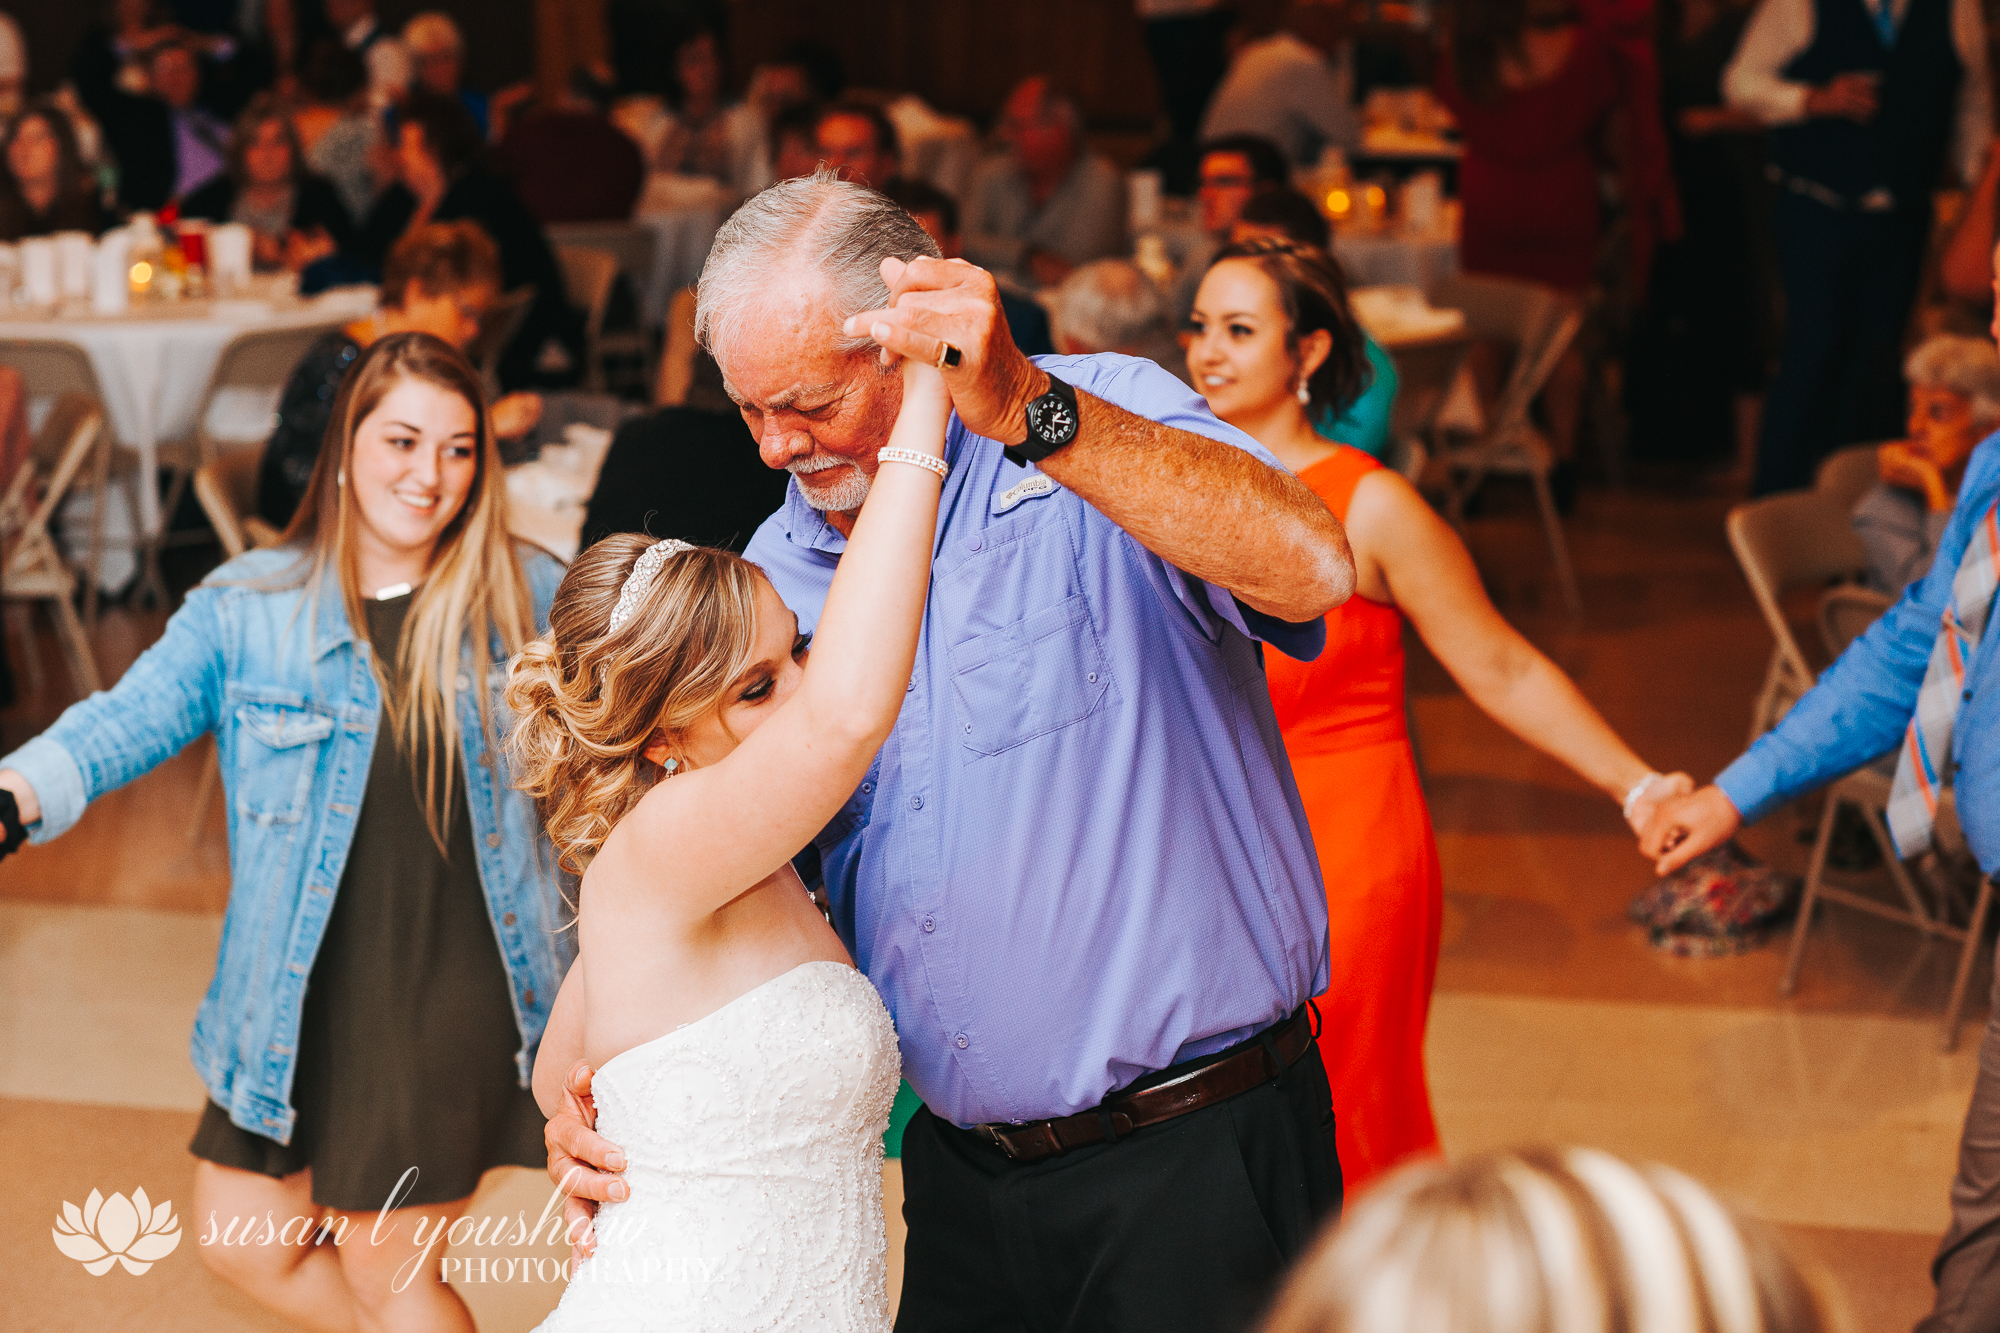 BLOG Kylie and corey Bennet 10-13-2018 SLY Photography LLC-176.jpg